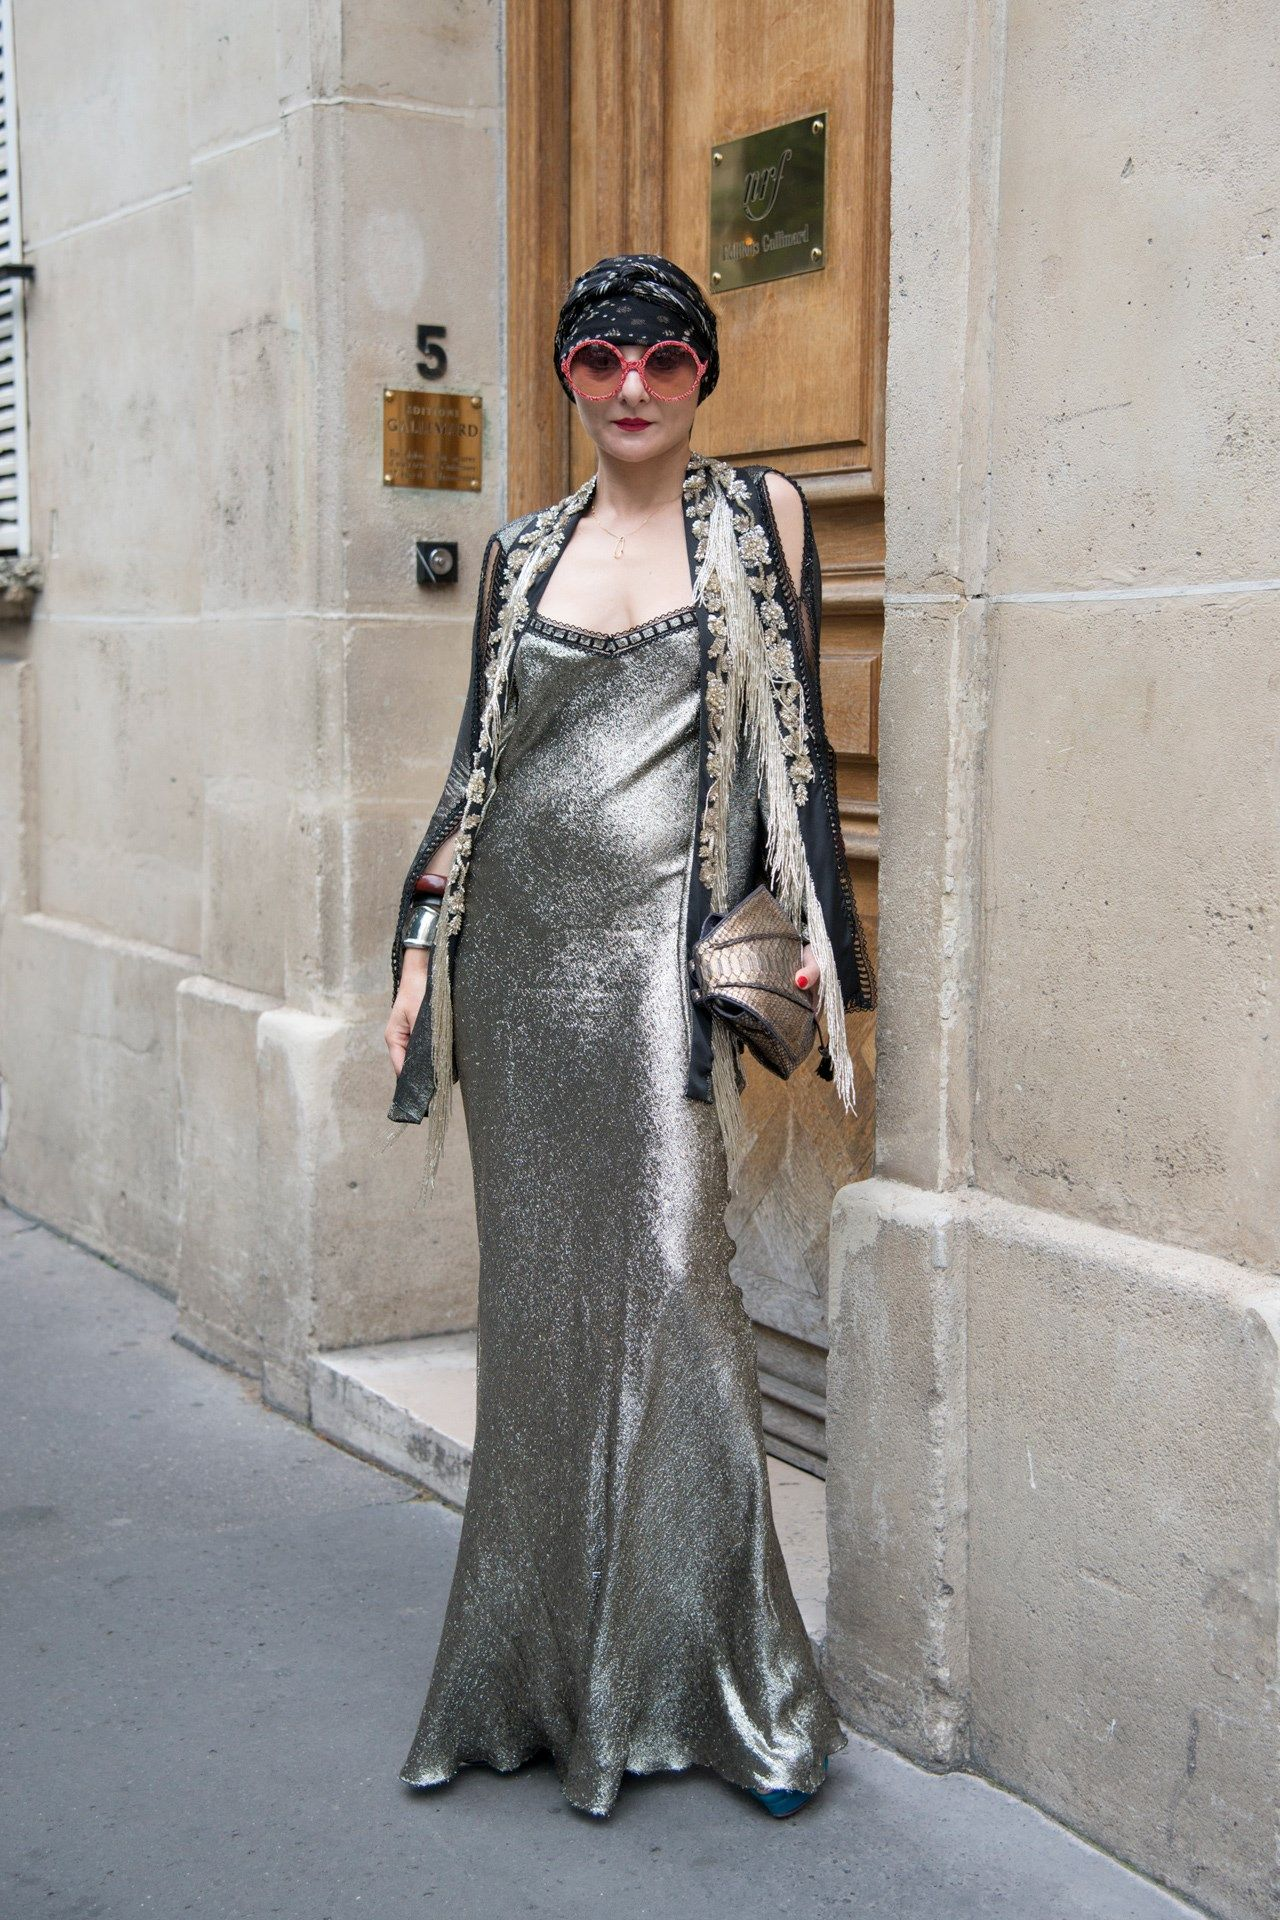 Catch up on Vogue's favourite street style looks from Paris Couture week on Vogue.co.uk.